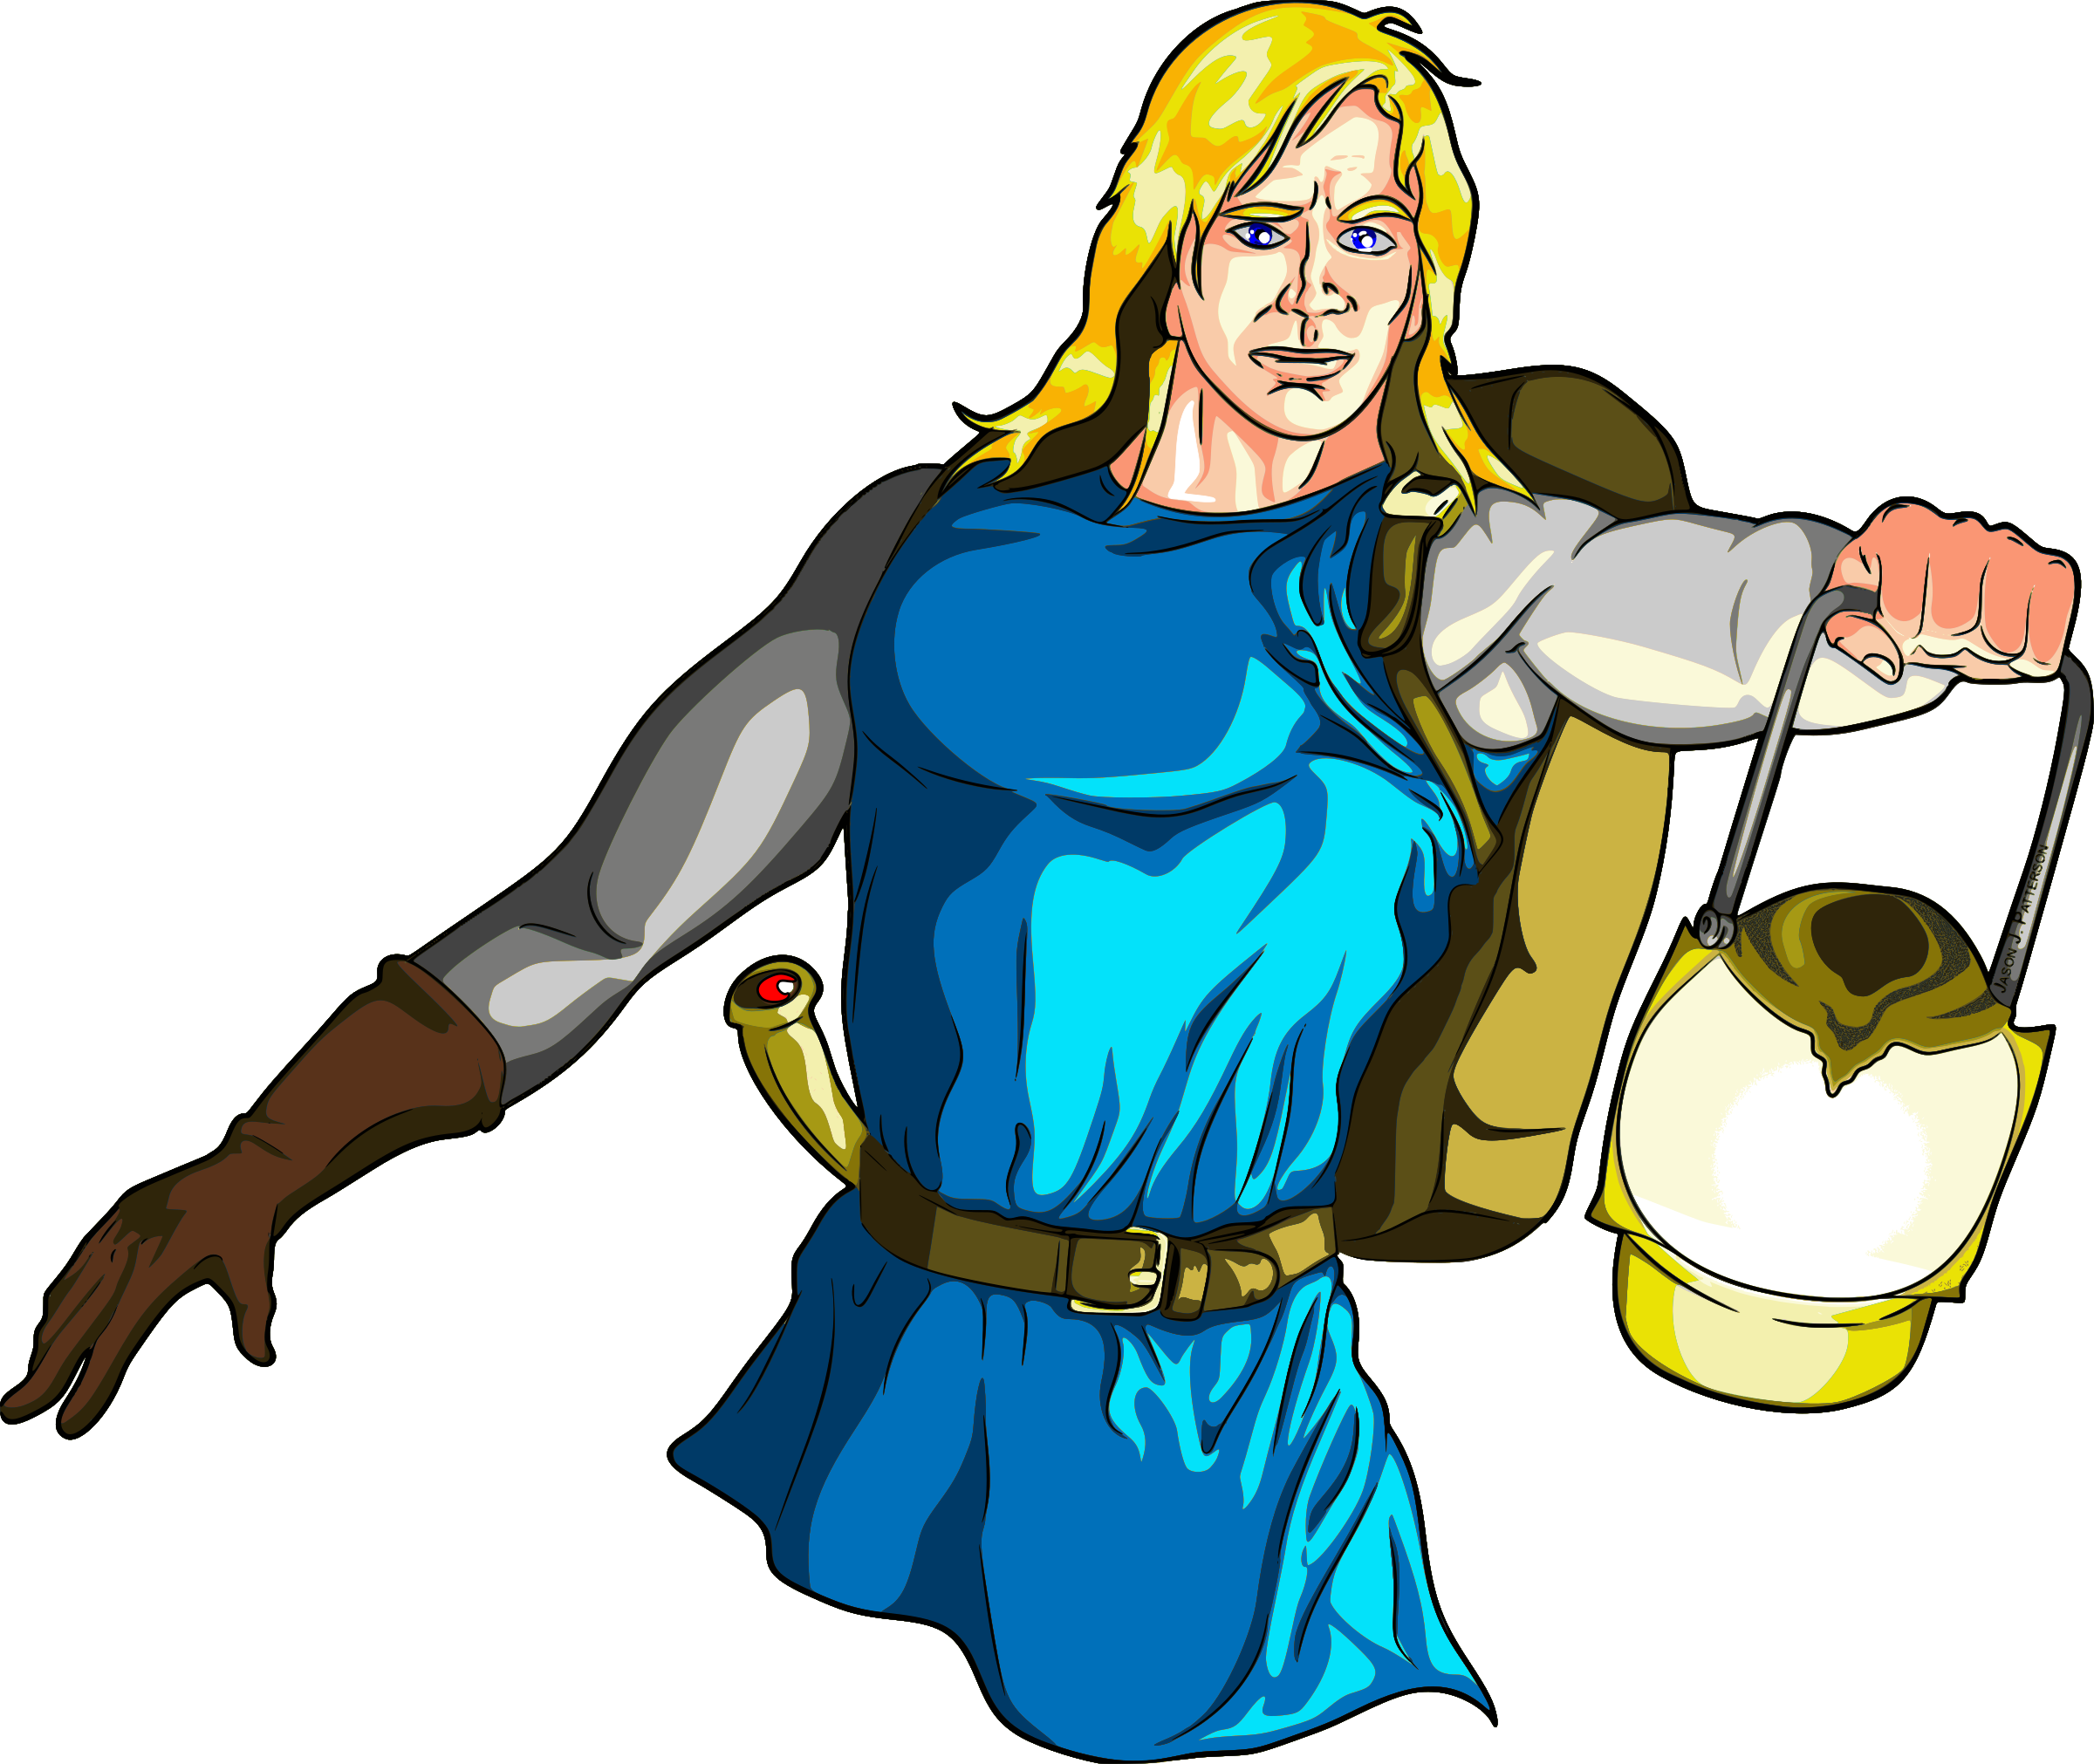 Blonde Male Medieval Adventurer with Lantern - Highlights by jpneok